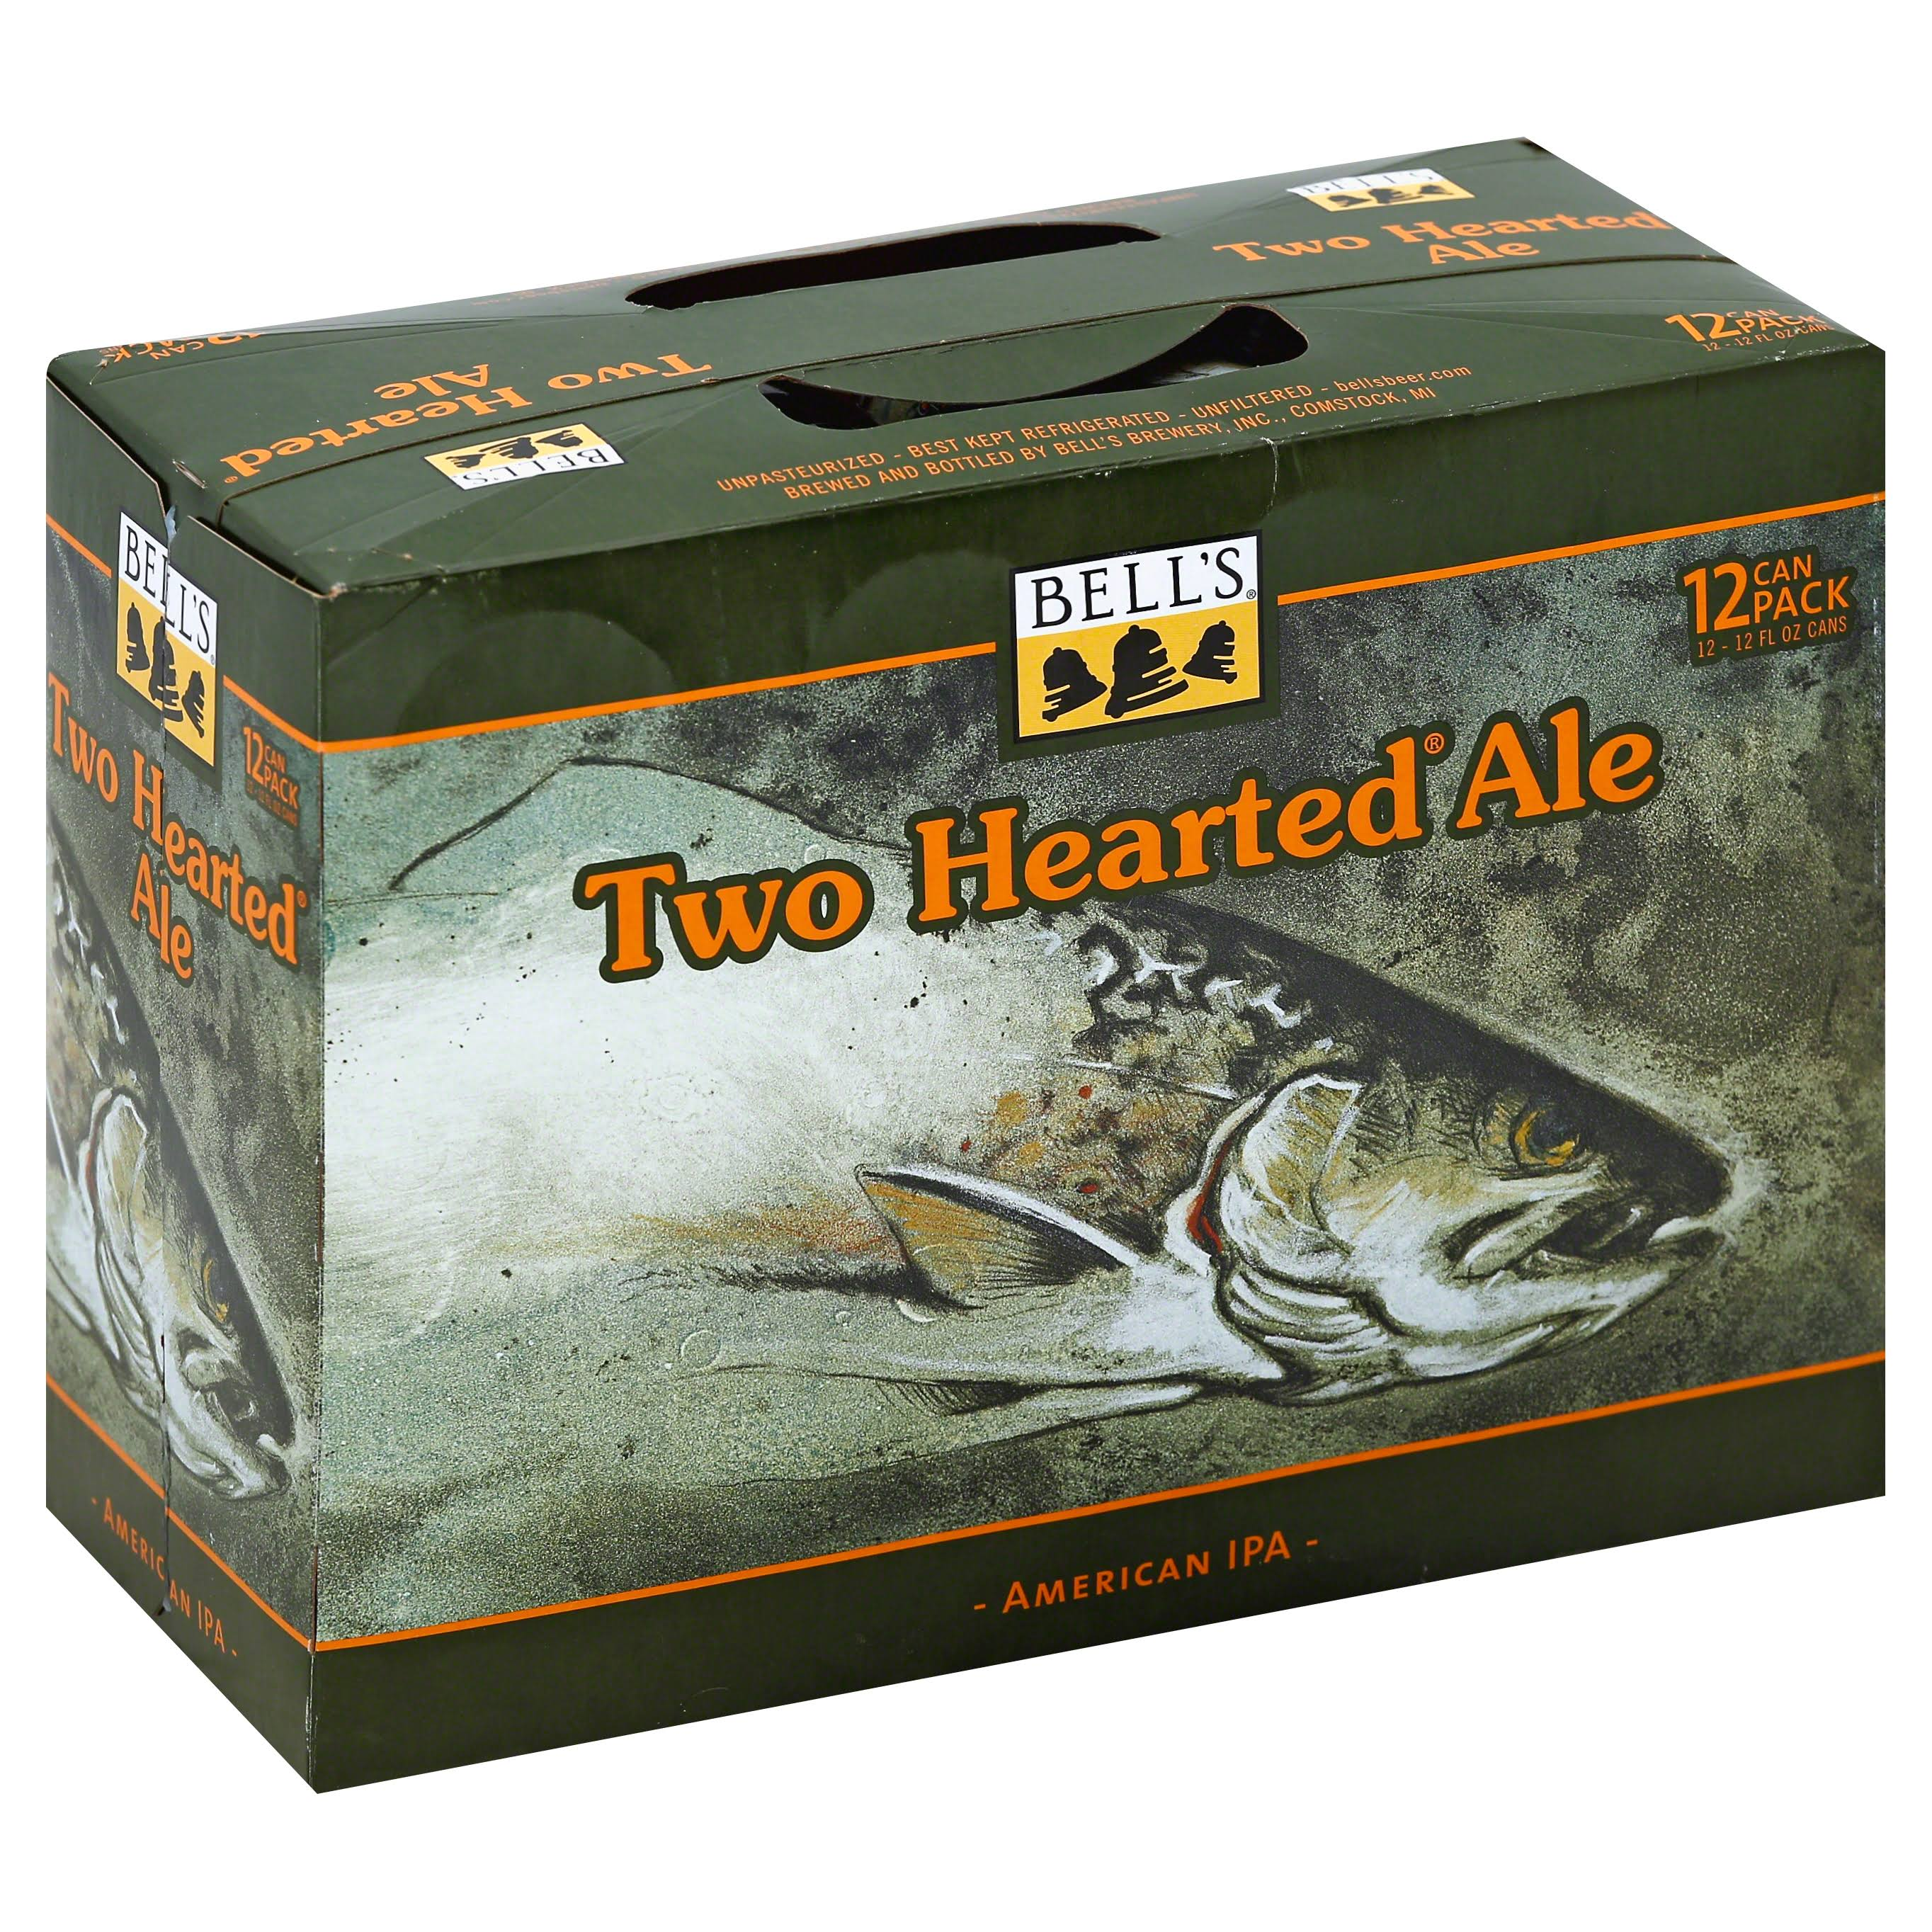 Bells Beer, American IPA, Two Hearted Ale, 12 Can Pack - 12 pack, 12 fl oz cans